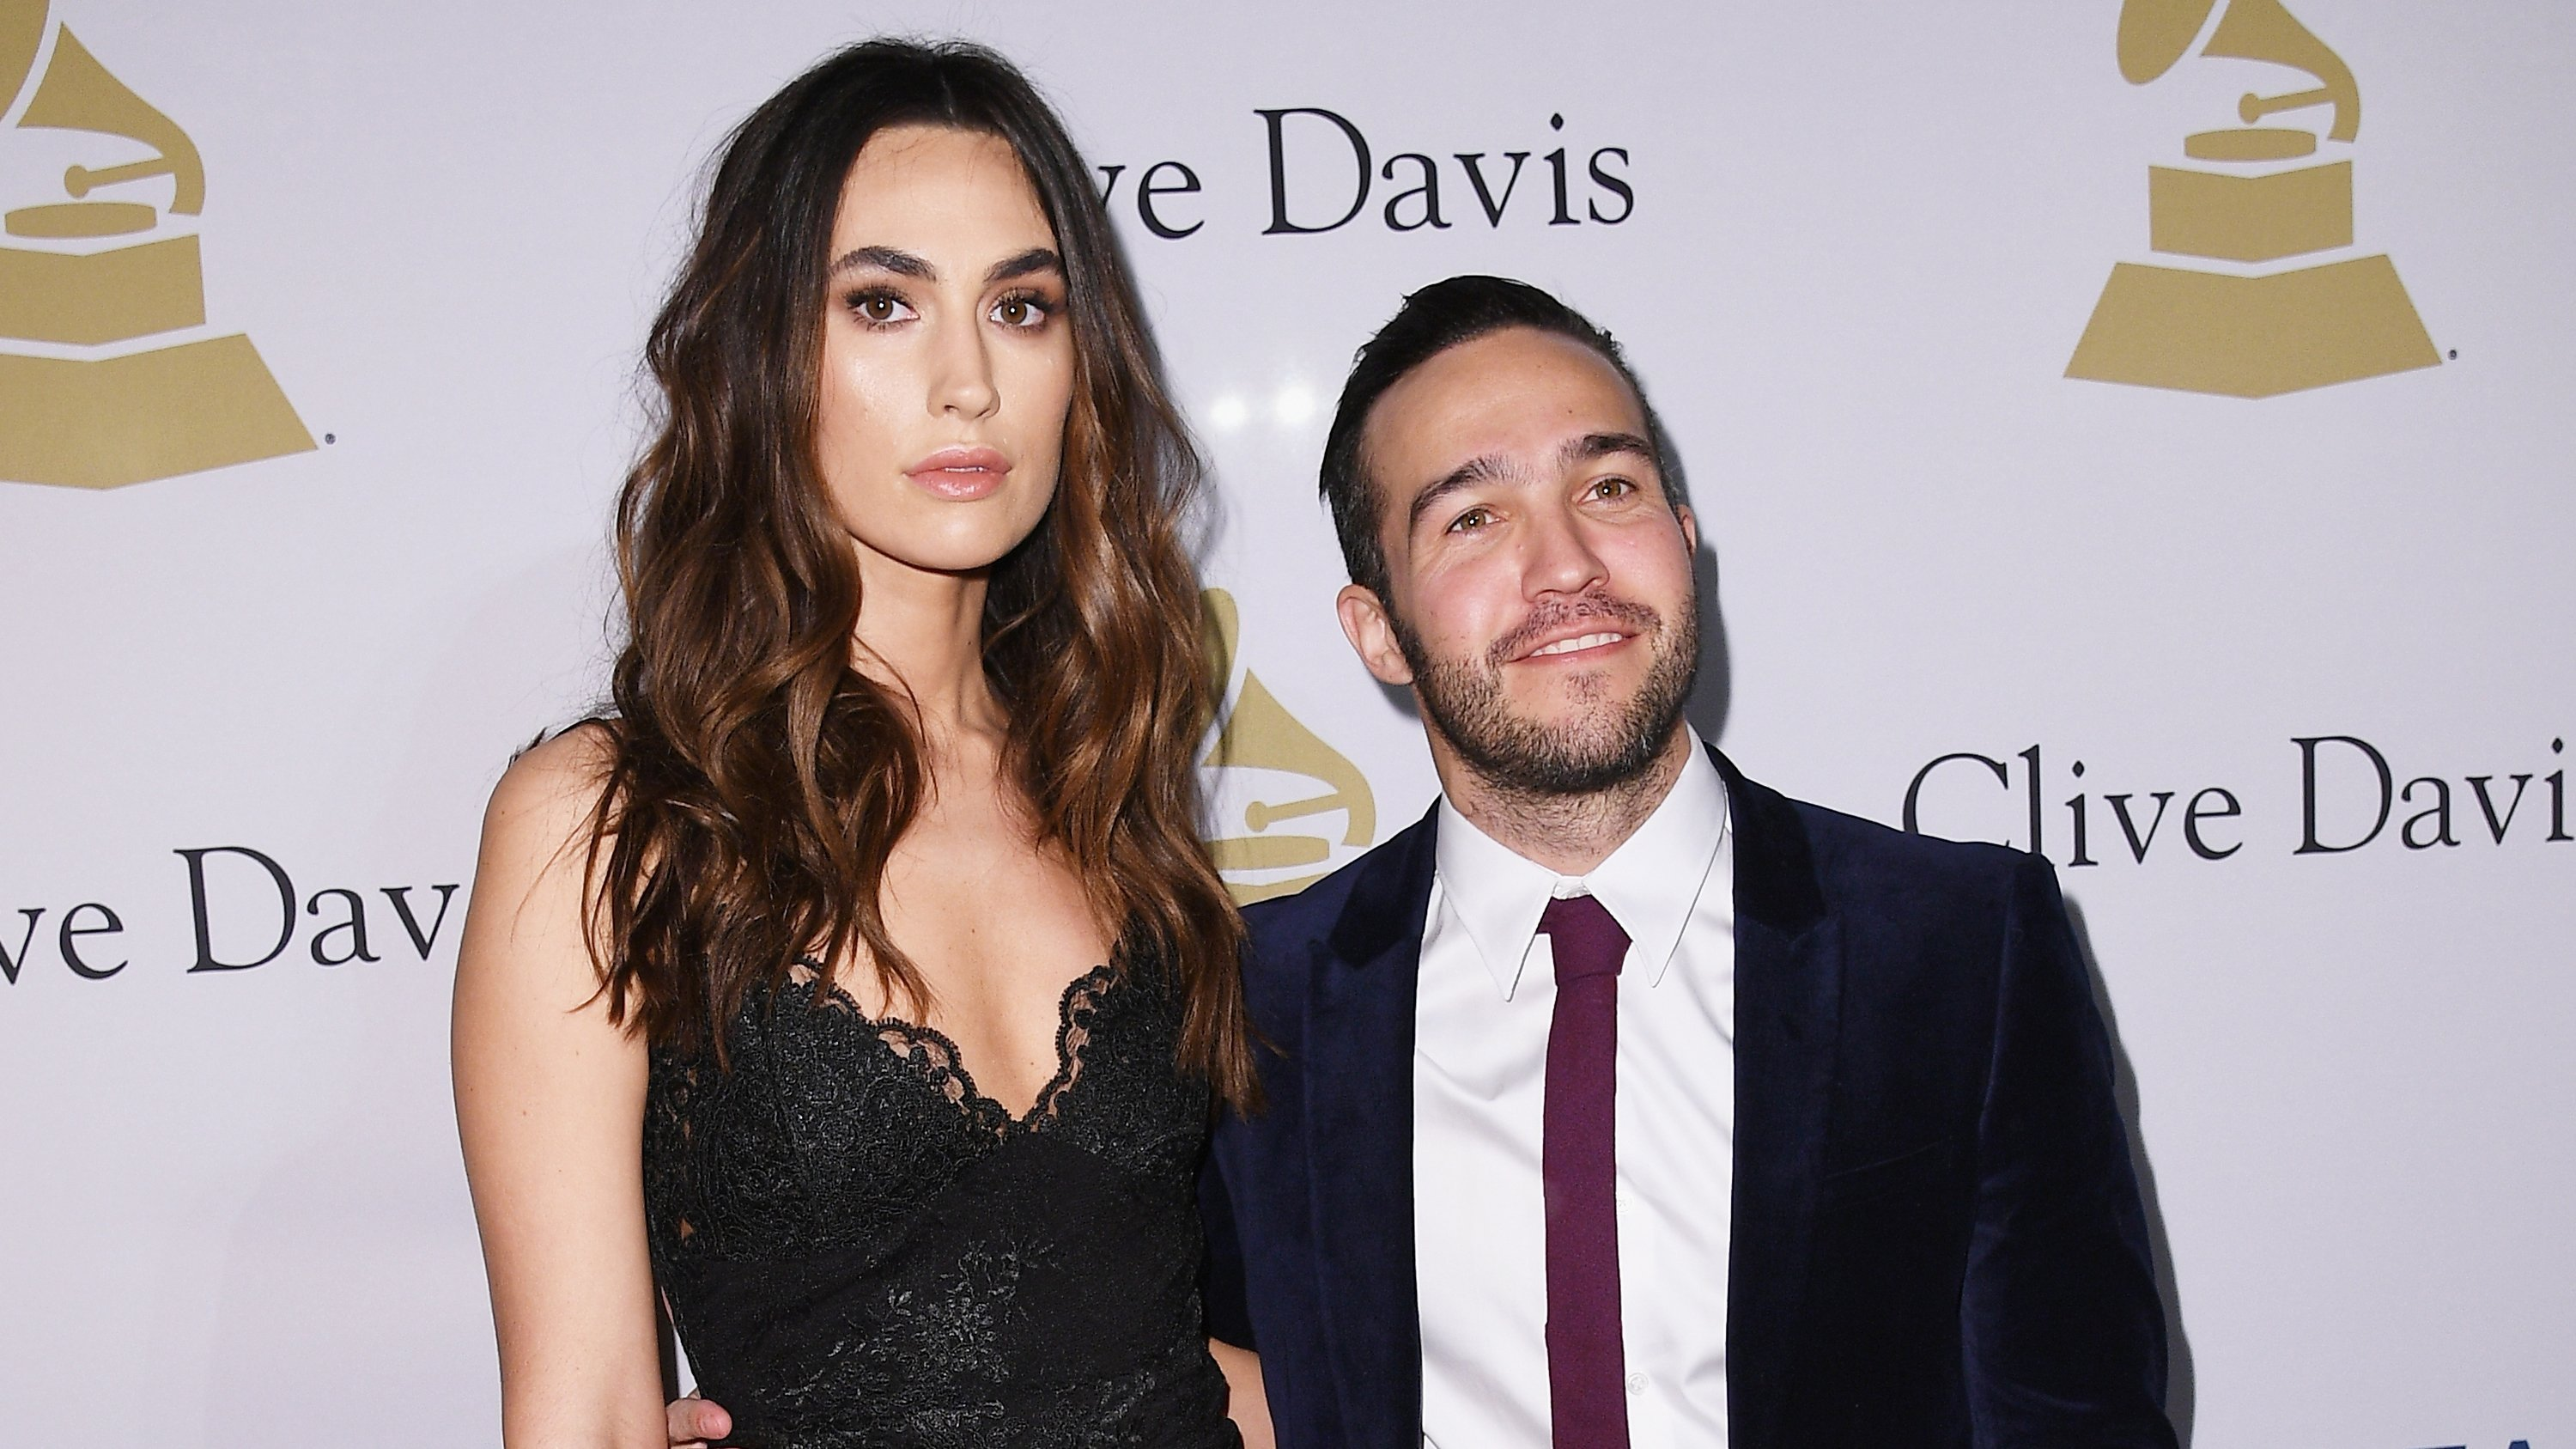 Fall Out Boy's Pete Wentz welcomes infant daughter